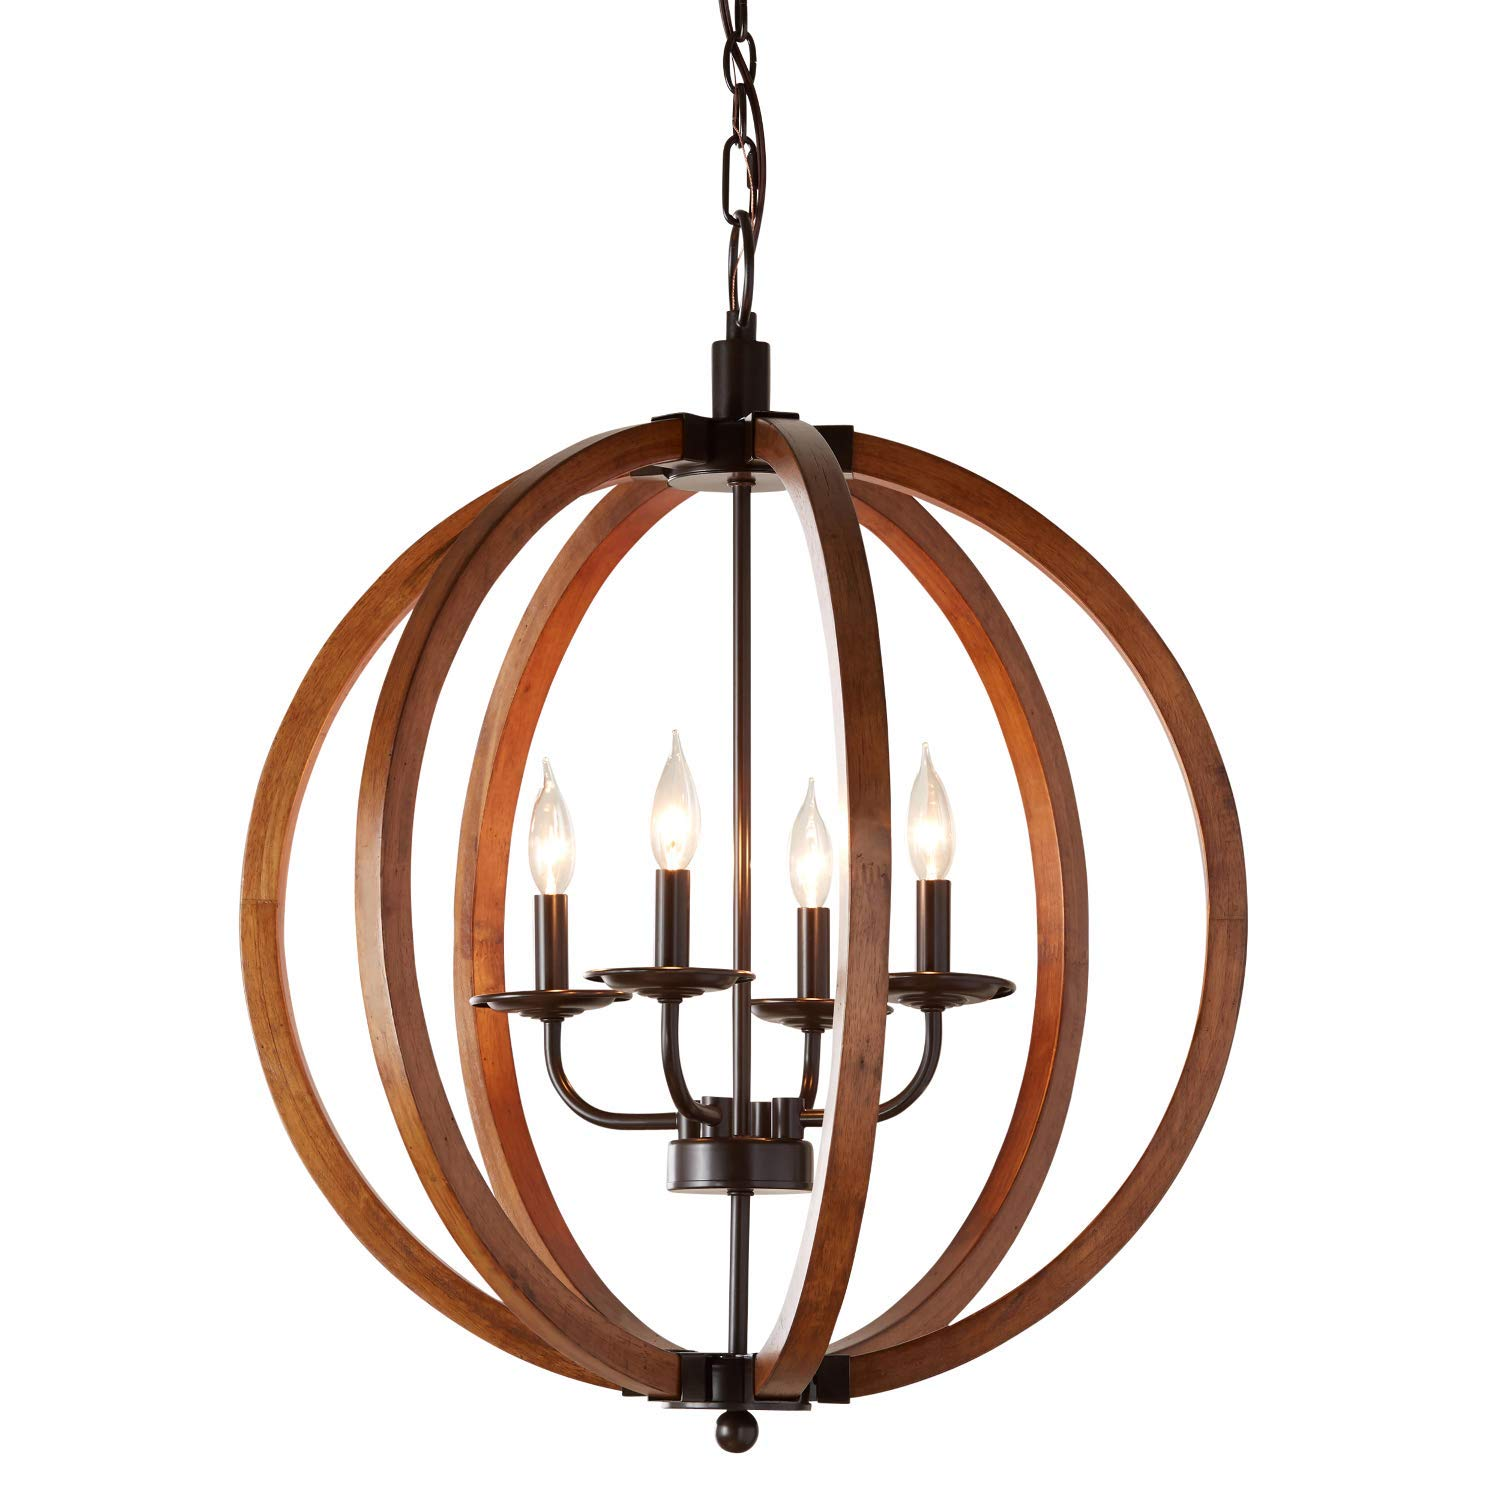 Rustic orb chandelier showcases distressed wood in oil rubbed bronze finish hanging round ceiling pendant lamp provides ample lighting candle style